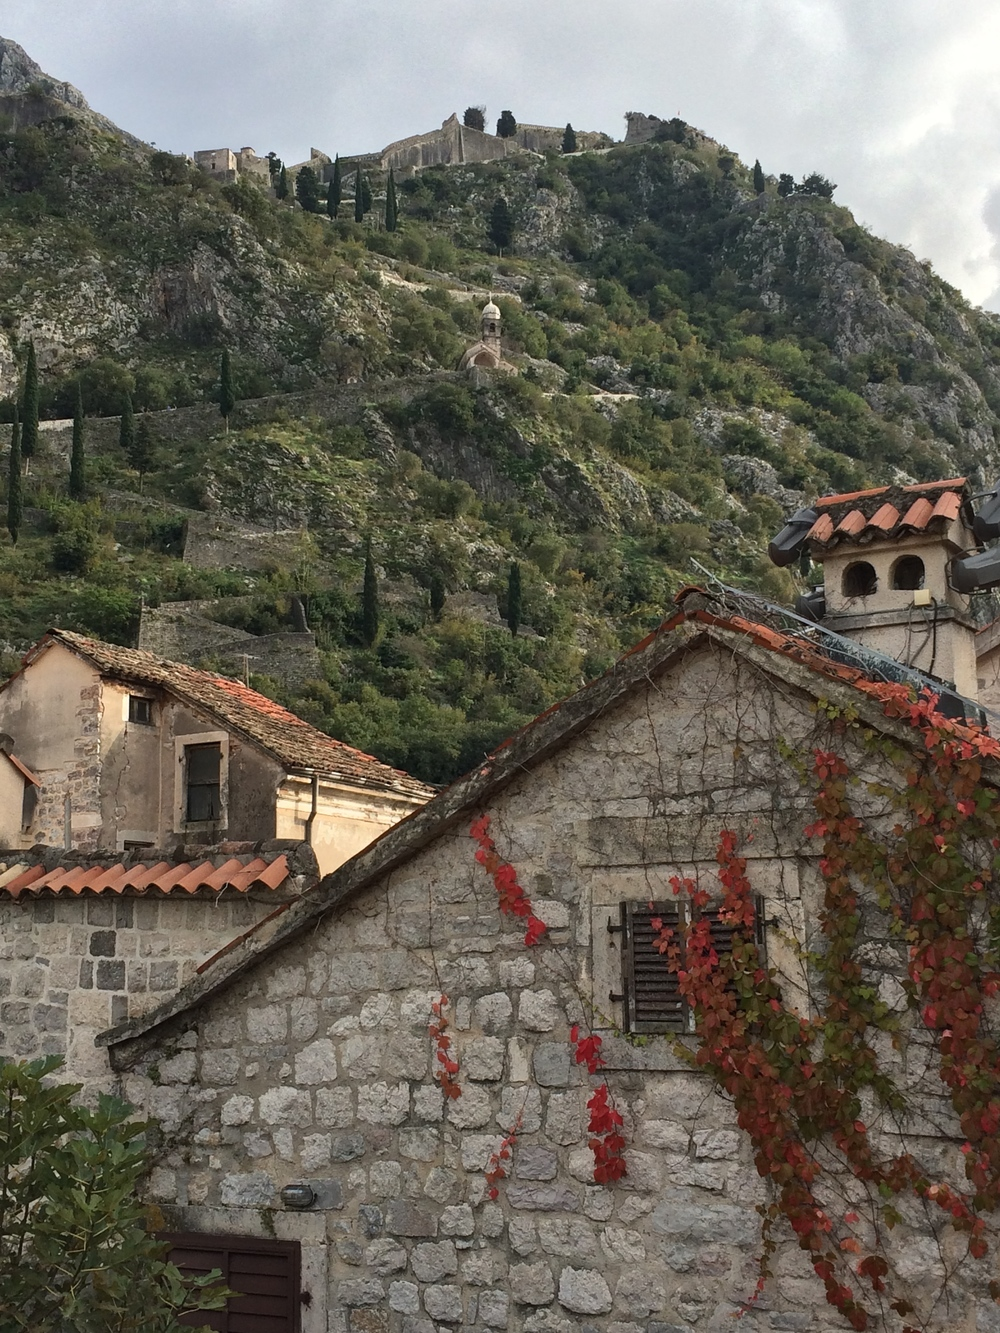 Wanderings along the old Kotor city walls.